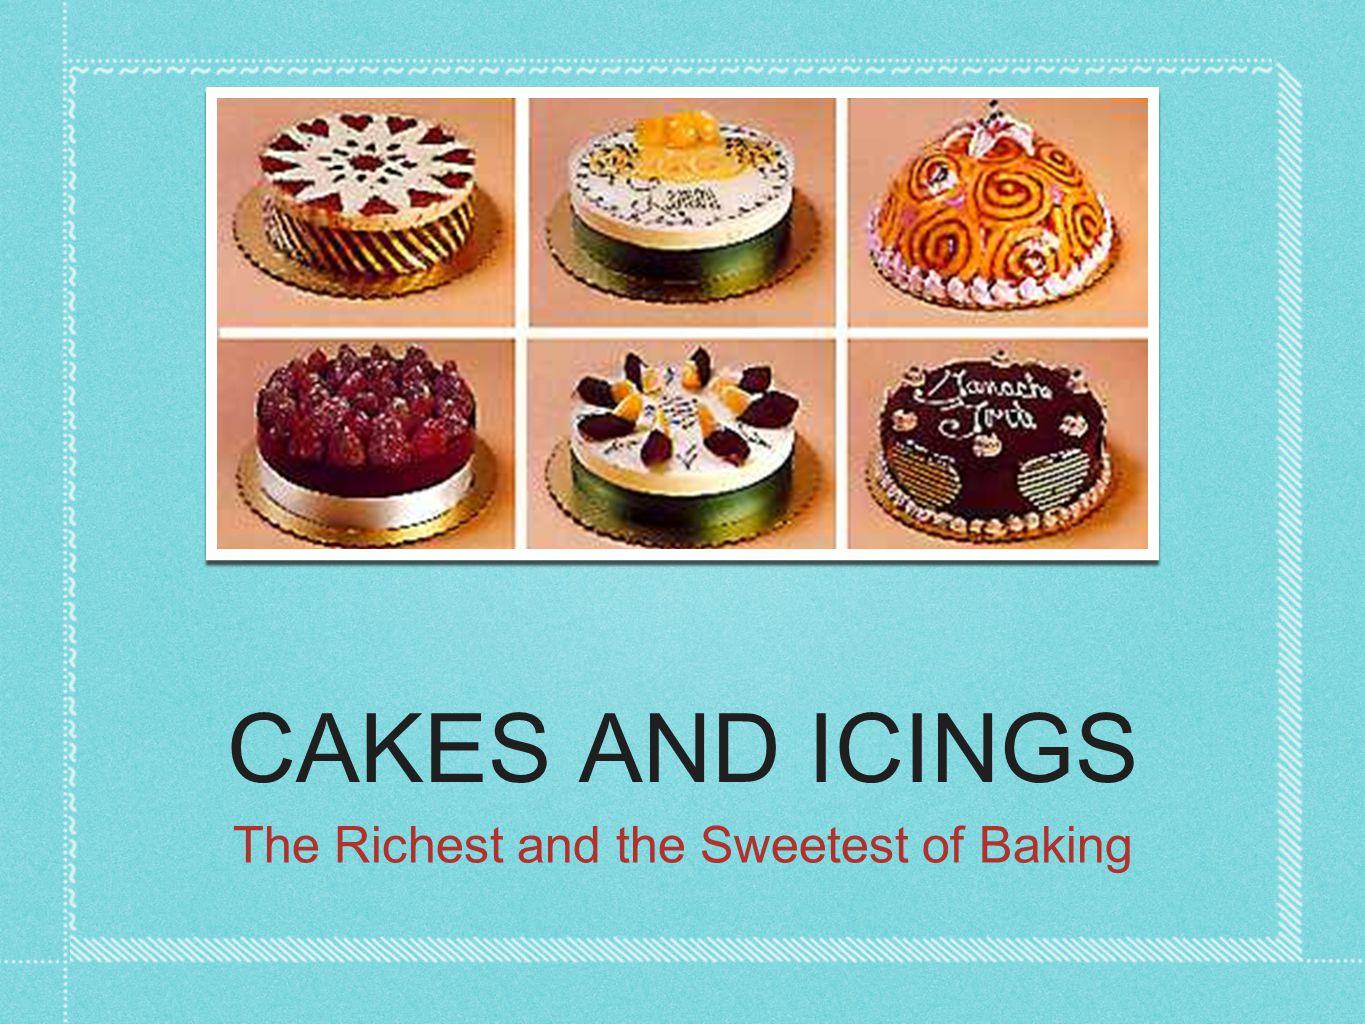 CAKES AND ICINGS The Richest and the Sweetest of Baking